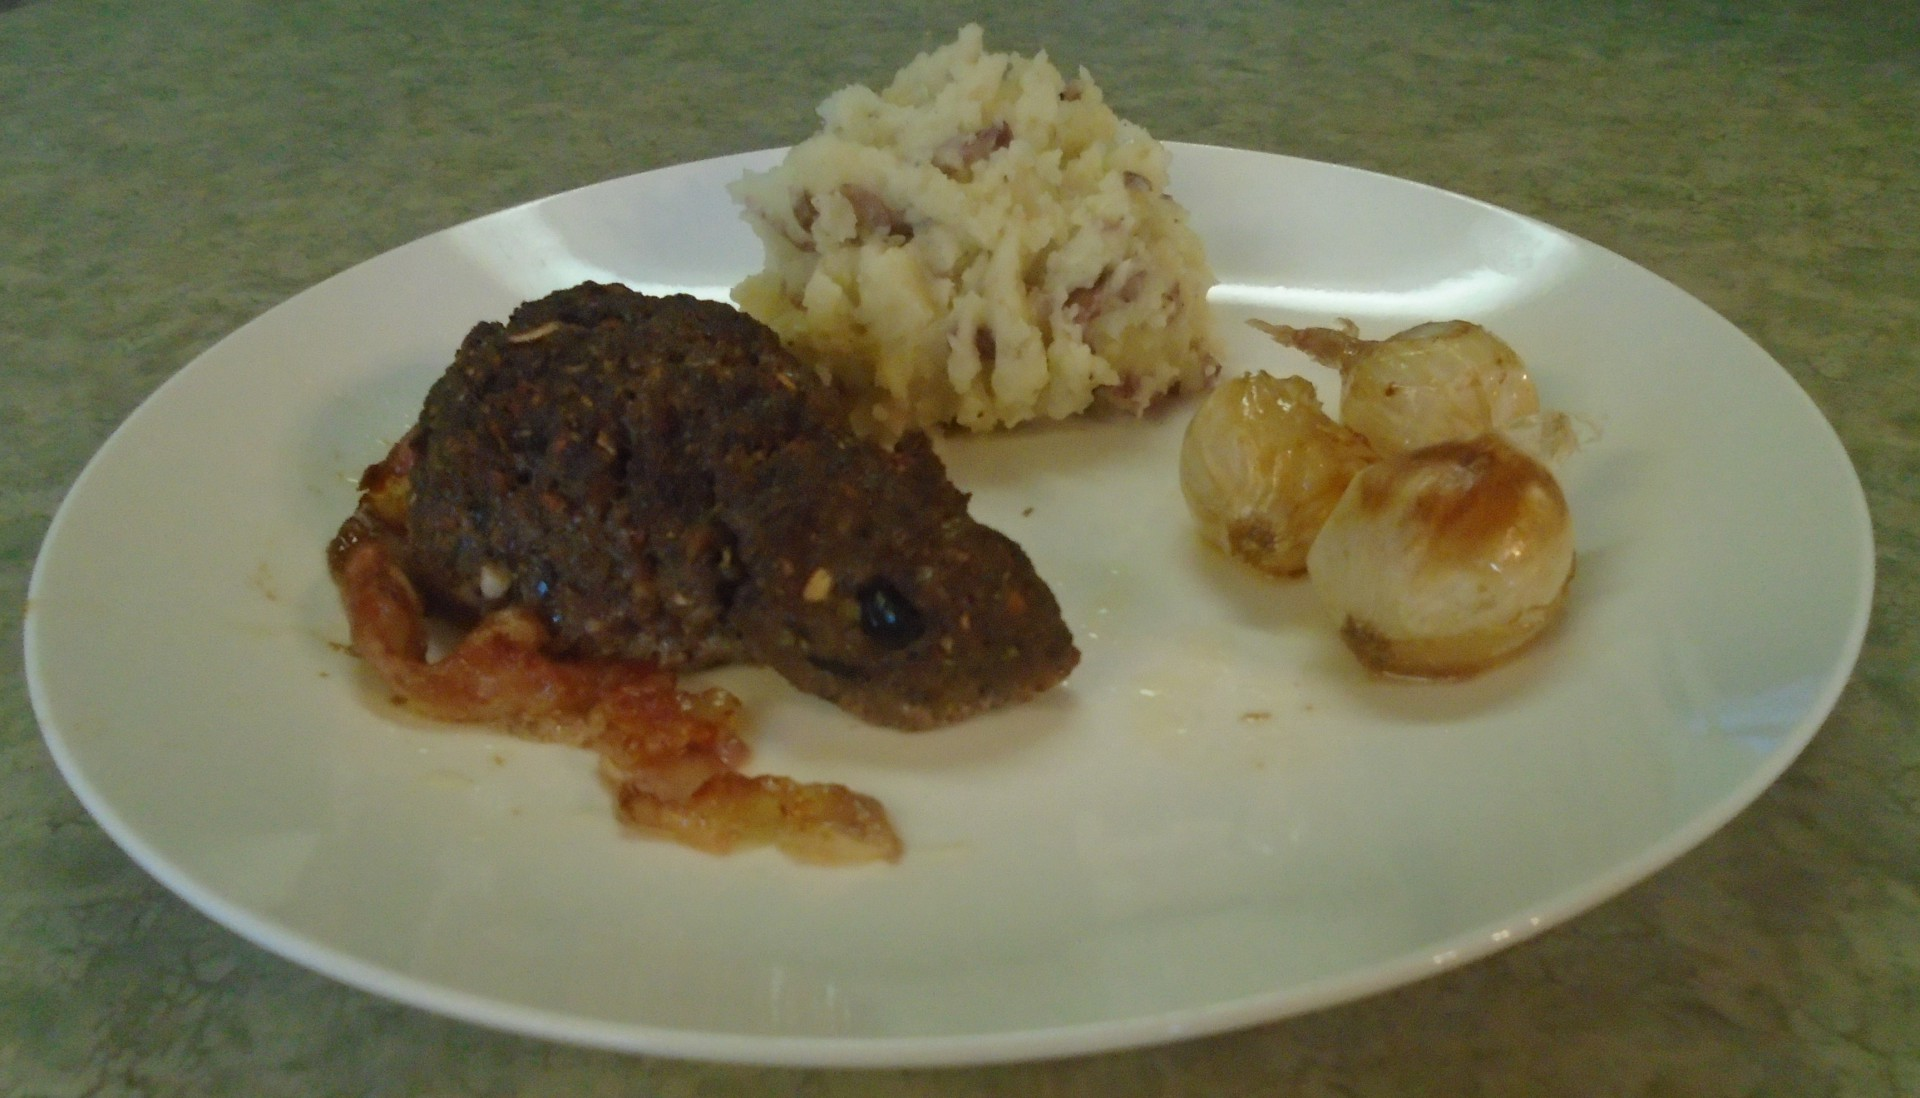 Rat Meatloaf and Garlic Mashed Potatoes